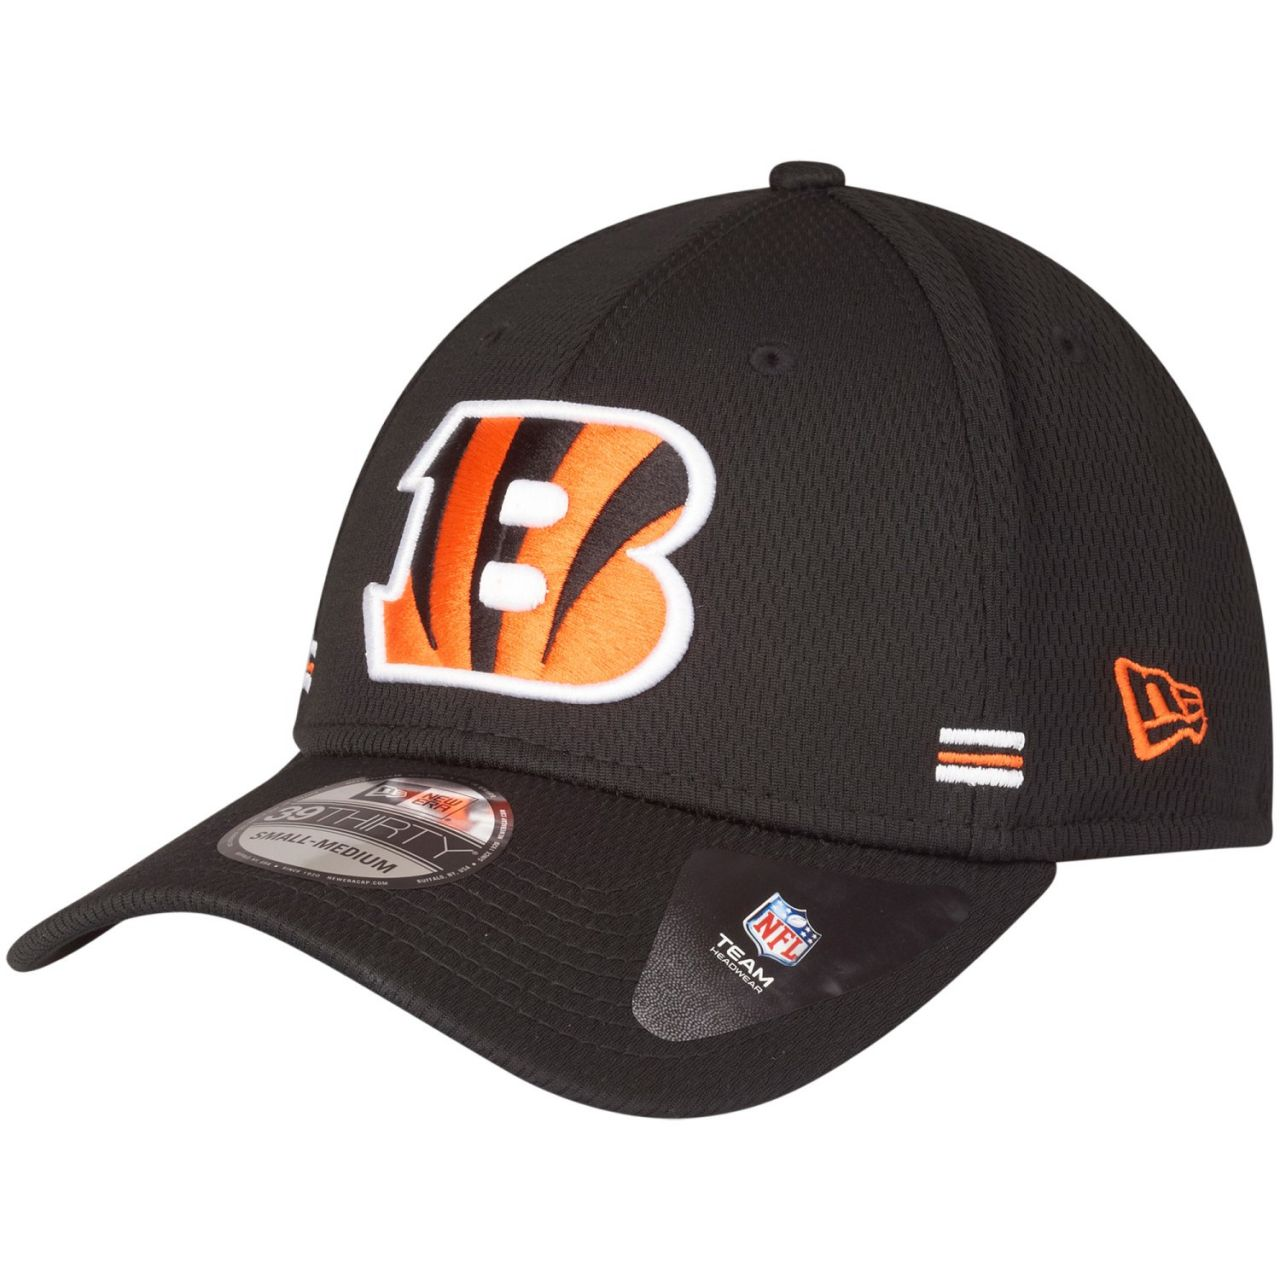 amfoo - New Era 39Thirty Cap - HOMETOWN Cincinnati Bengals